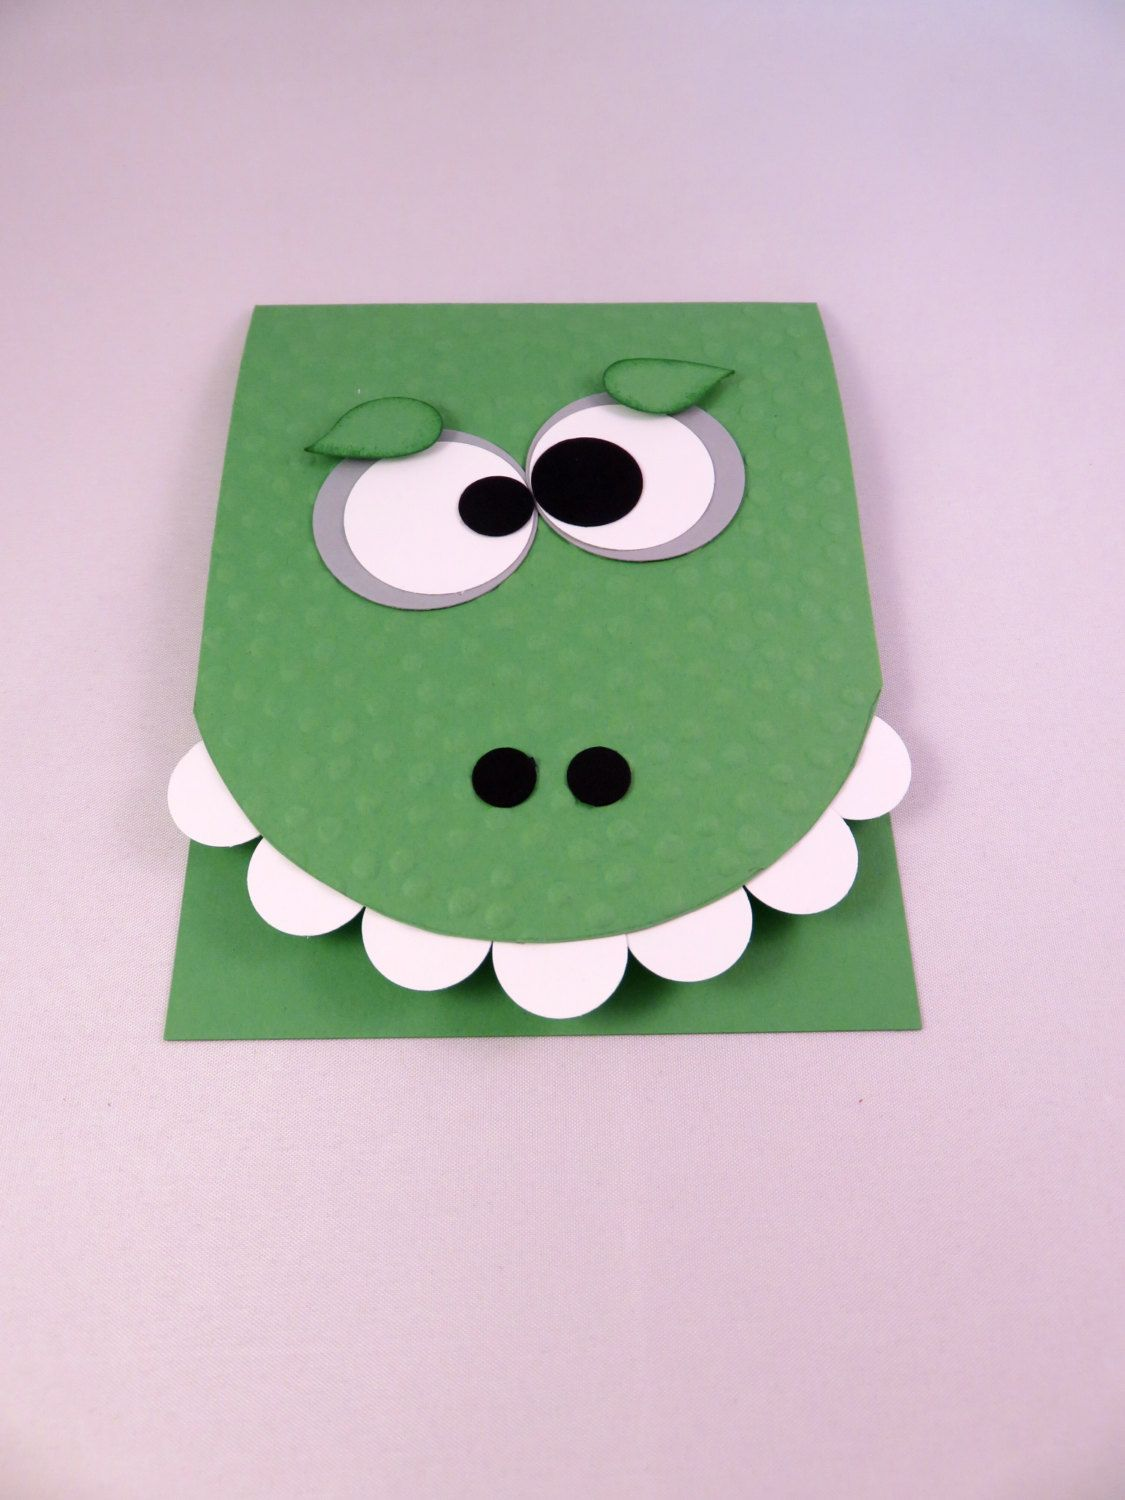 Silly monster birthday card for kids handmade birthday greeting card silly monster birthday card for kids handmade birthday greeting card by prettyonpapershop on etsy kristyandbryce Images